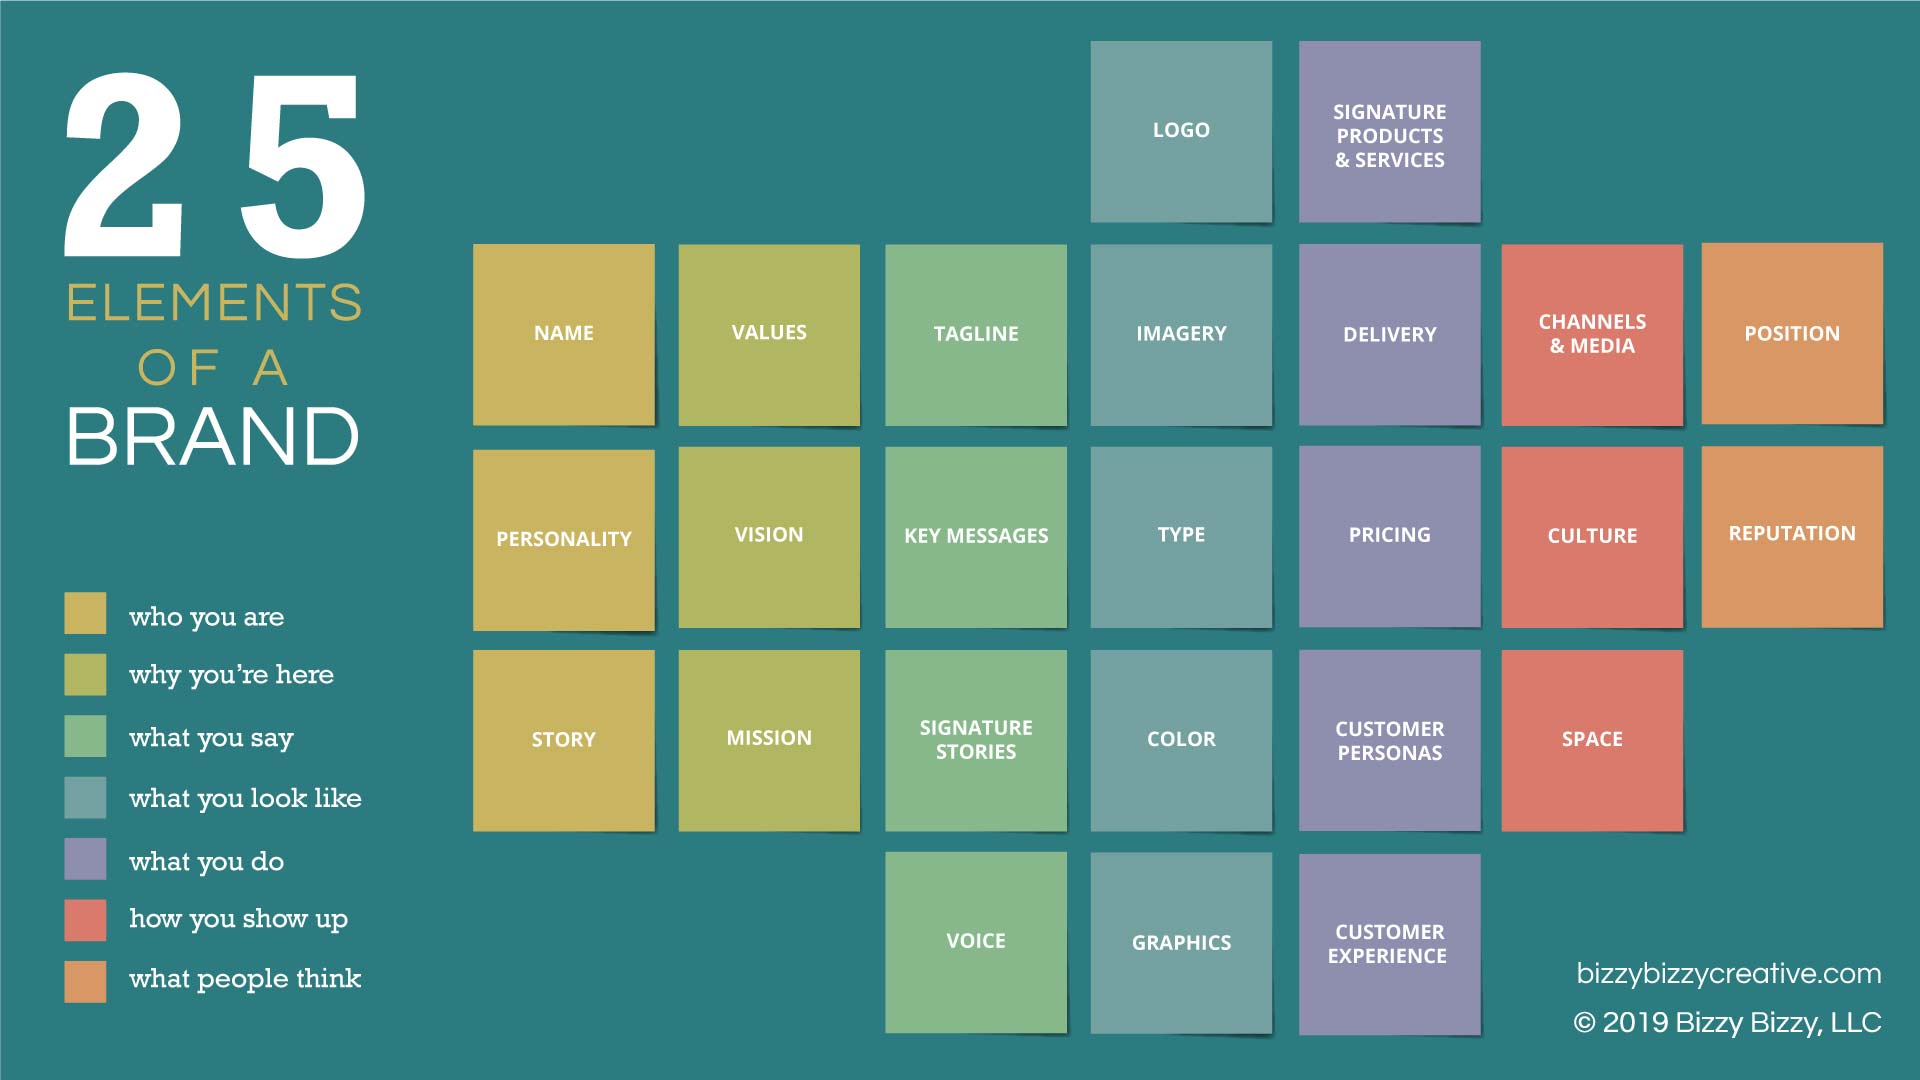 25 Elements of a Brand Infographic